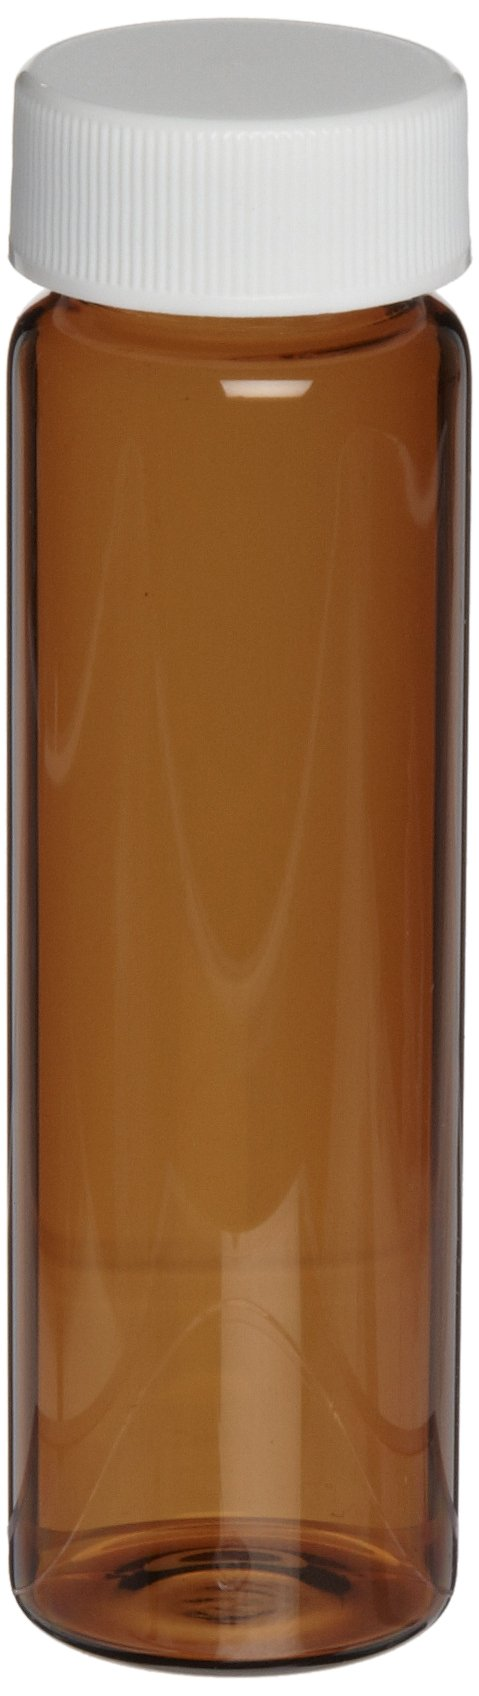 National Scientific Glass Sample Amber Vials with PTFE/Foam Urethane Liner Septum, 40ml Volume (Pack of 100) by National Scientific